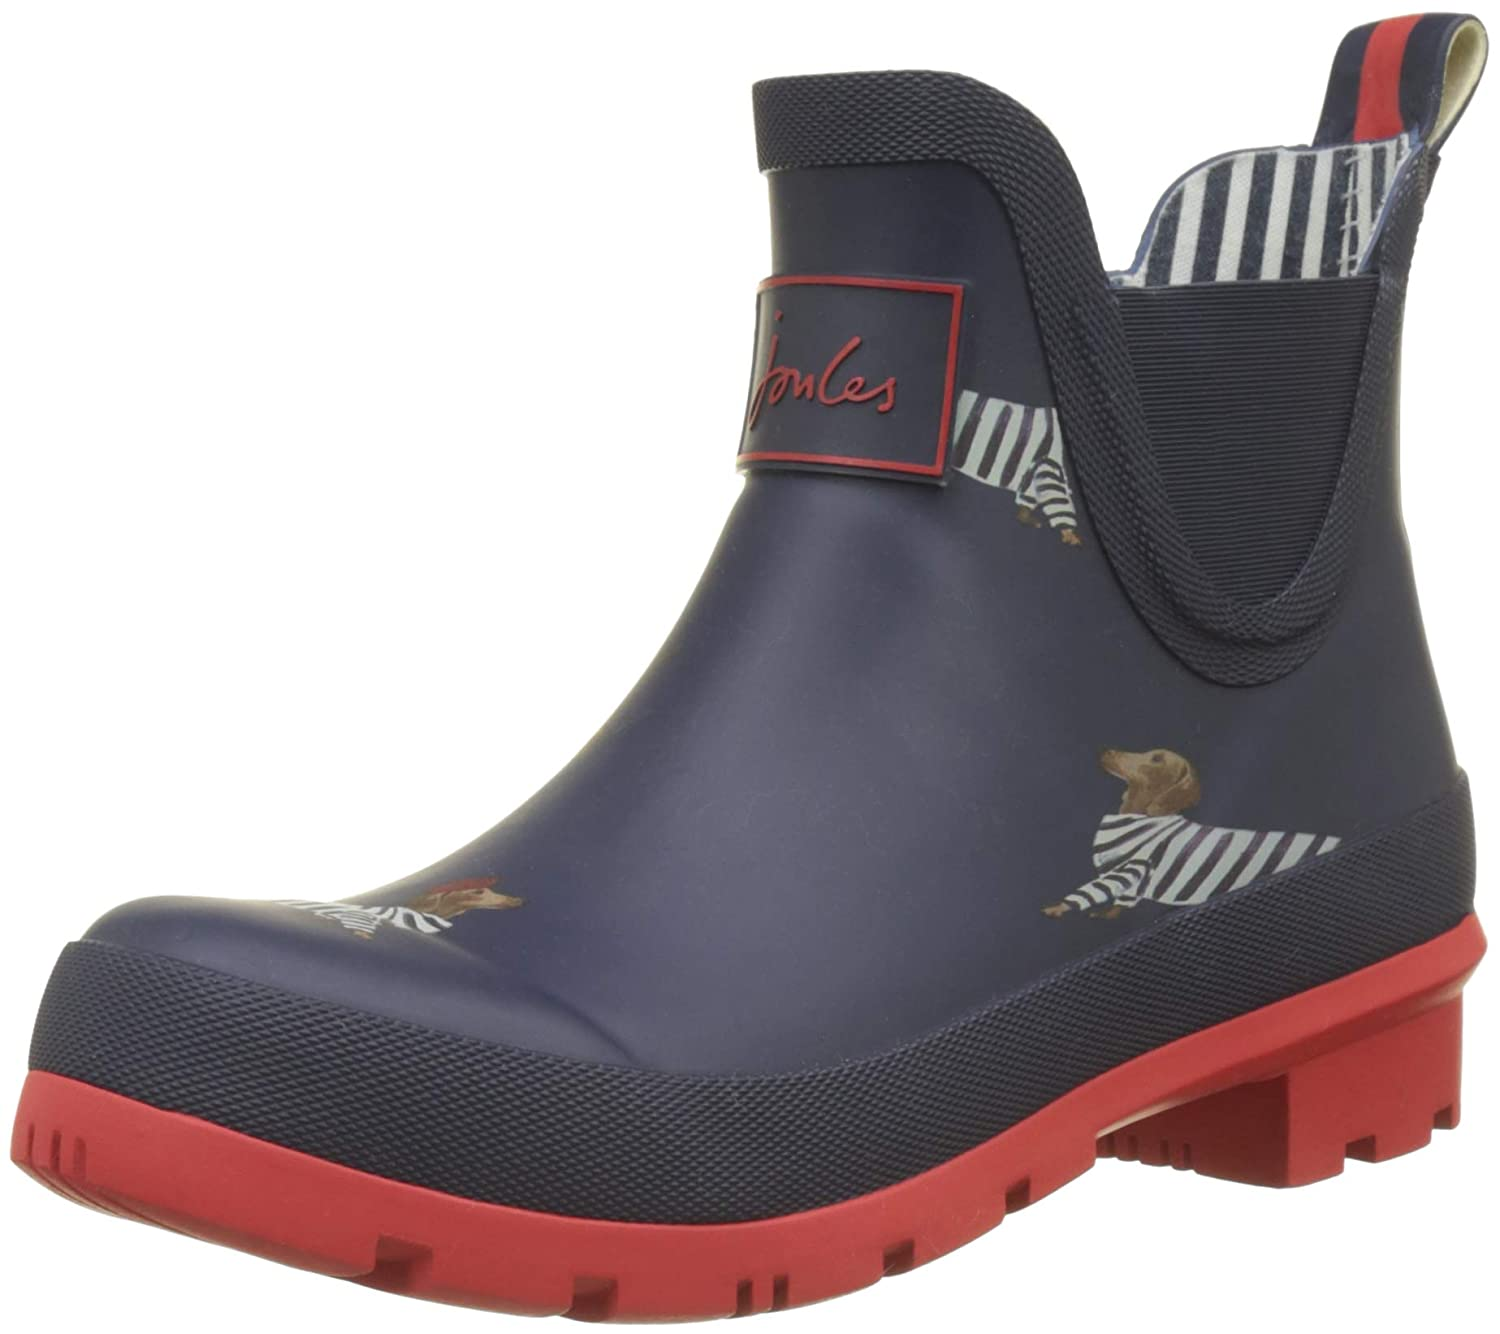 Joules Wellibob, Bottes Cheville Classiques Cheville Bleu Femme Bleu (French Navy Bottes Dachshund Fnvdach) 586c414 - conorscully.space